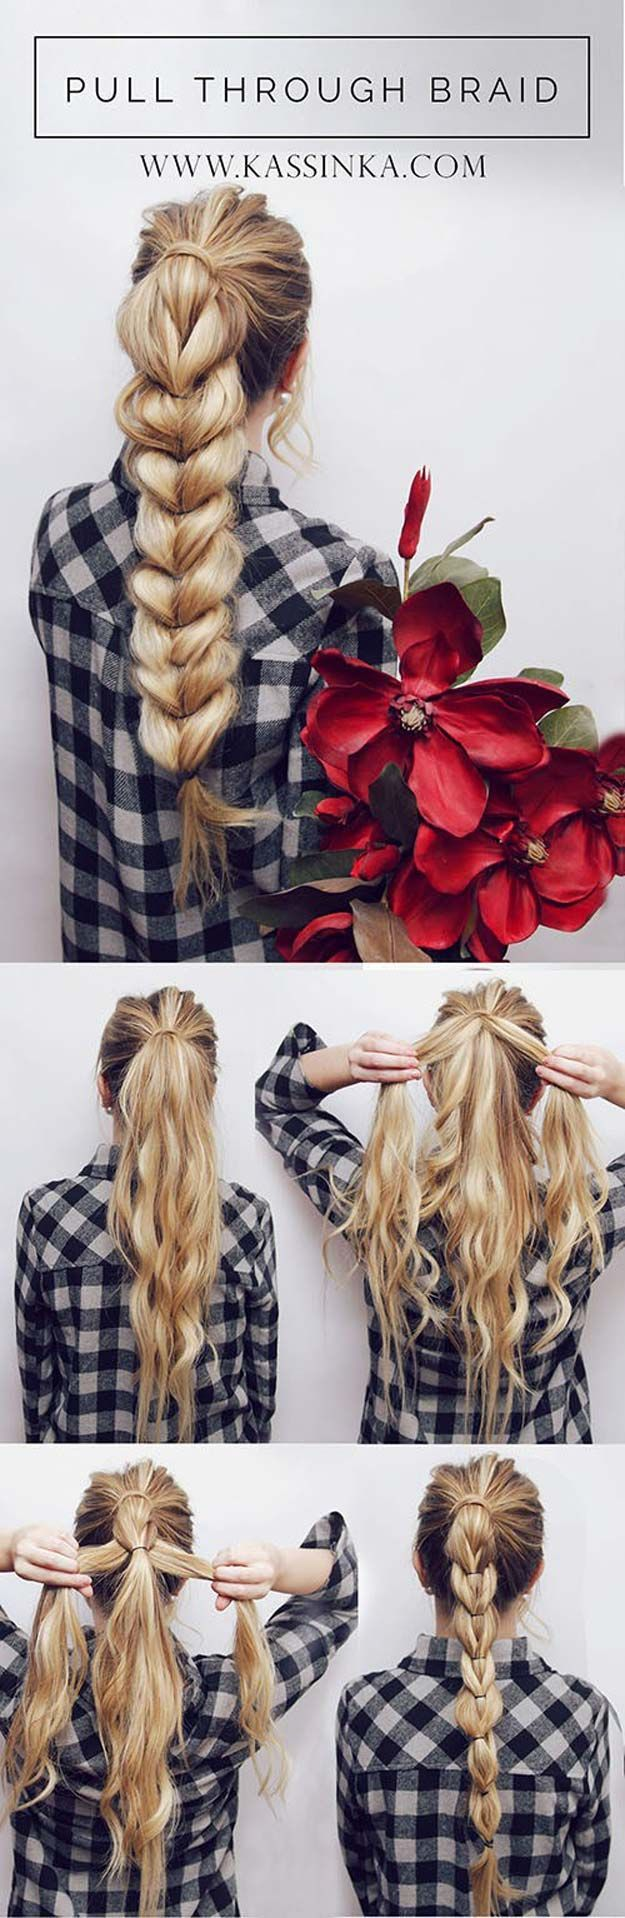 Best Hair Braiding Tutorials - Pull Through Braid Tutorial - Easy Step by Step Tutorials for Braids - How To Braid Fishtail, French Braids, Flower Crown, Side Braids, Cornrows, Updos - Cool Braided Hairstyles for Girls, Teens and Women - School, Day and Evening, Boho, Casual and Formal Looks diyprojectsfortee...